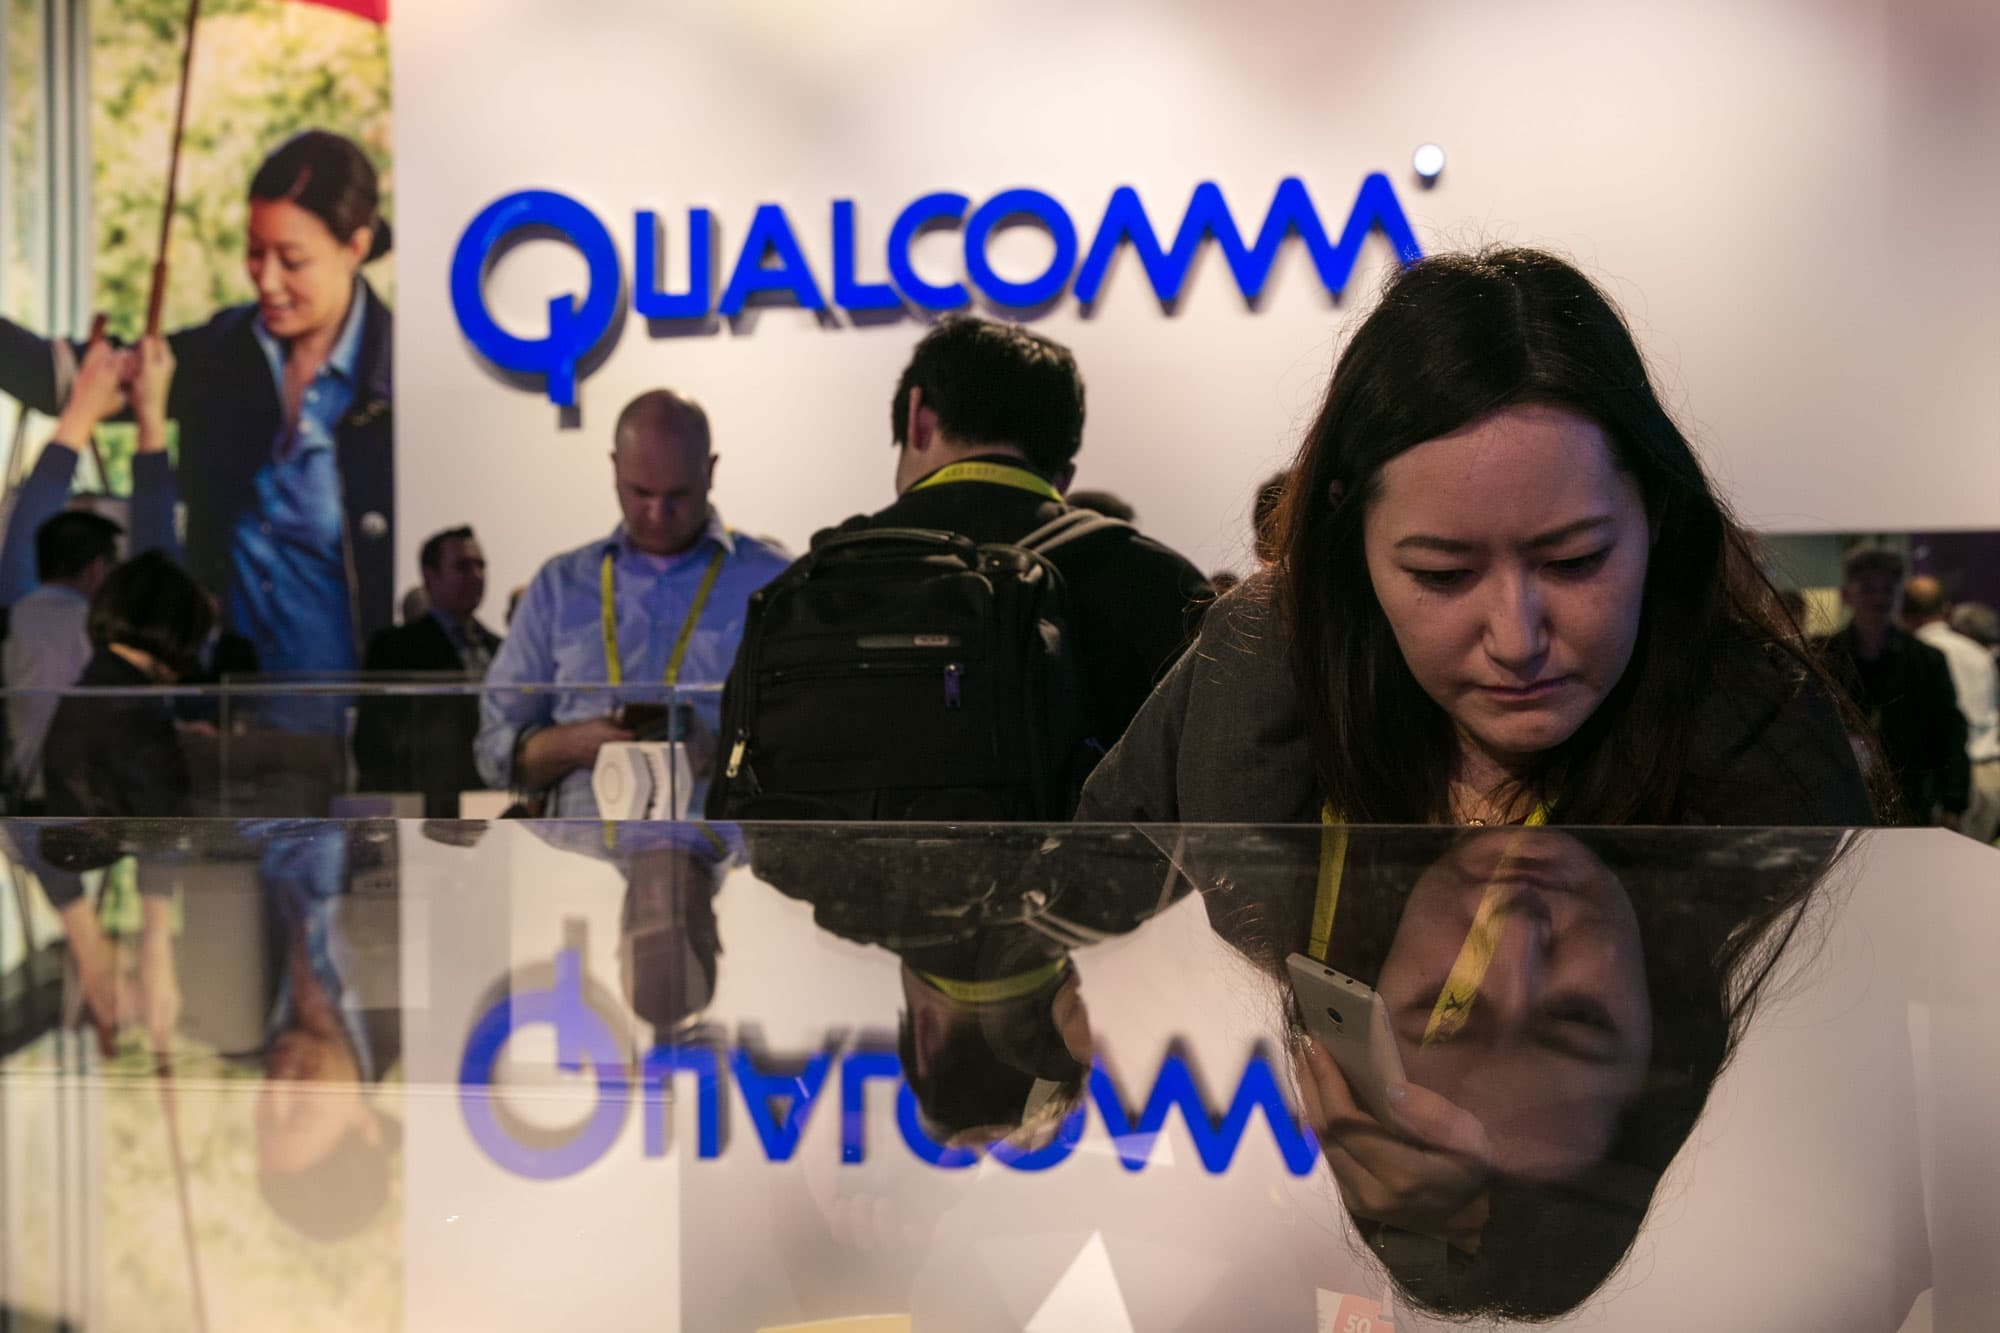 GP: Qualcomm booth at CES 170104